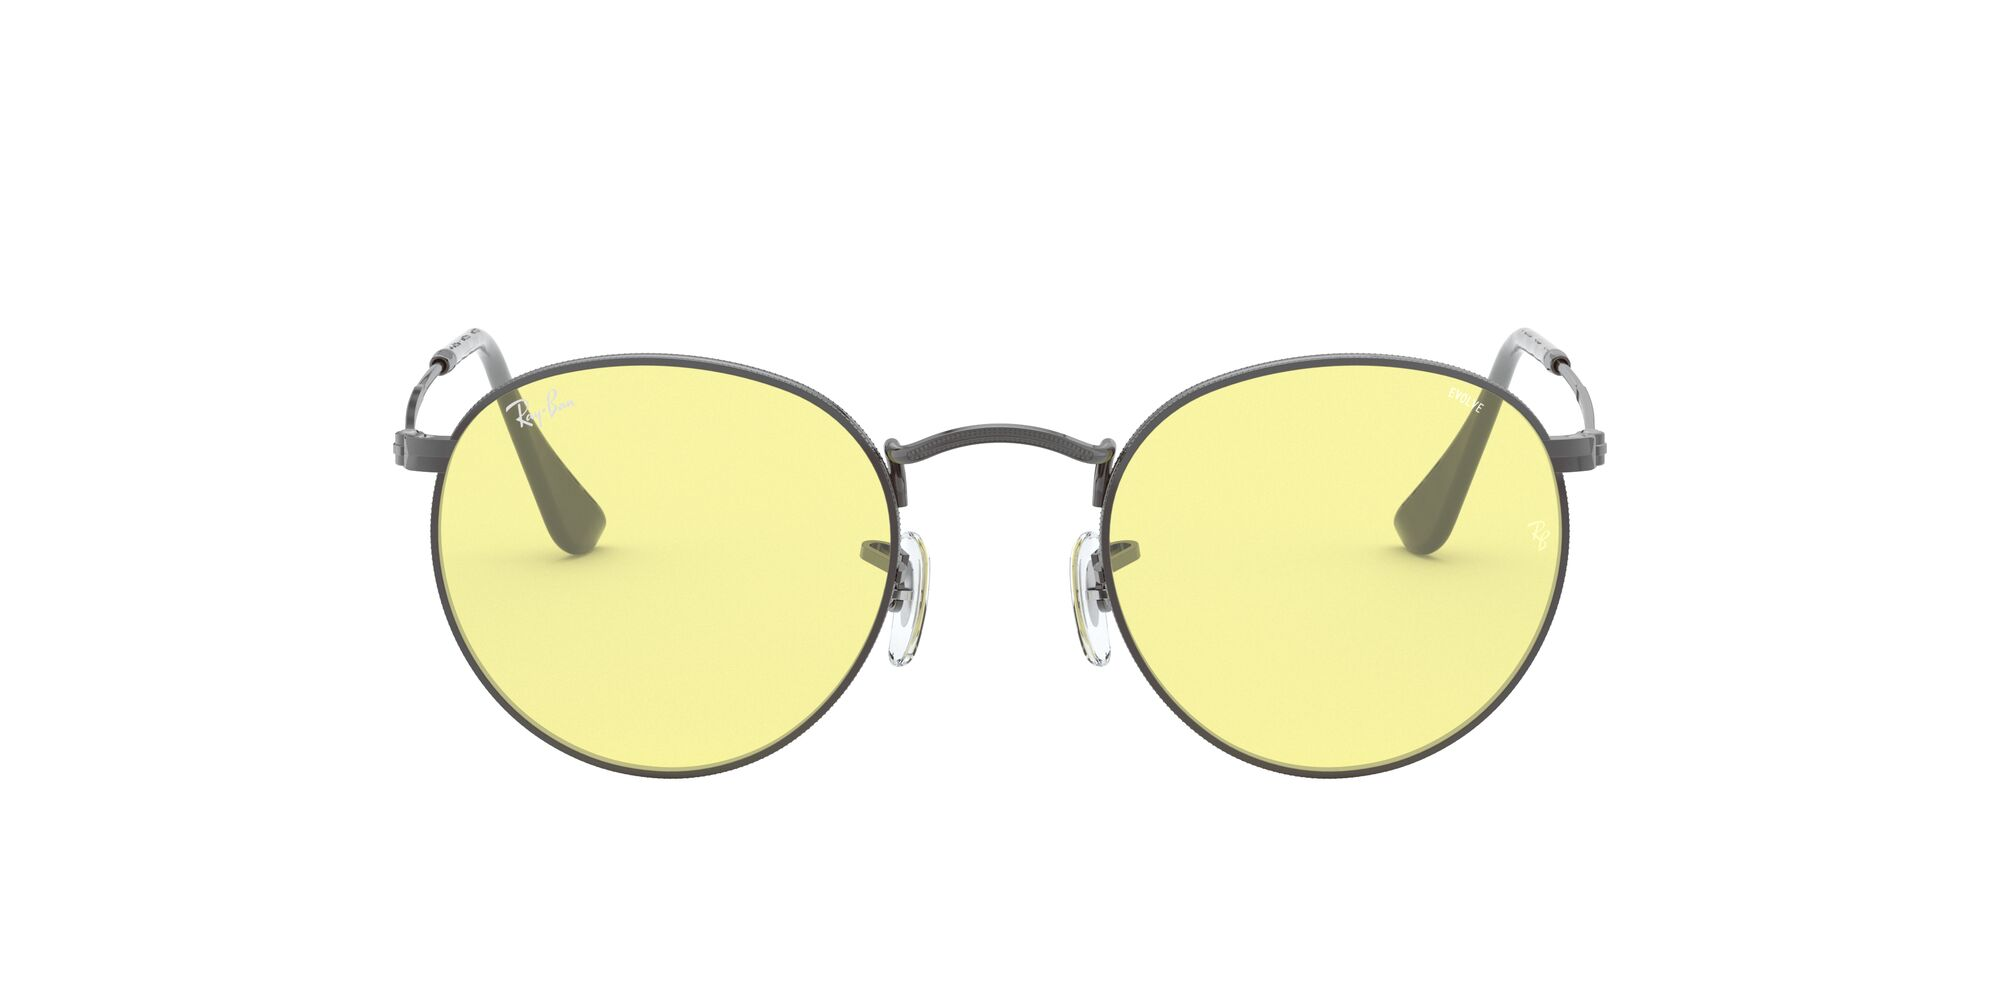 Front Ray-Ban Ray-Ban 0RB3447 004/T4 52/21 Zilver/Geel